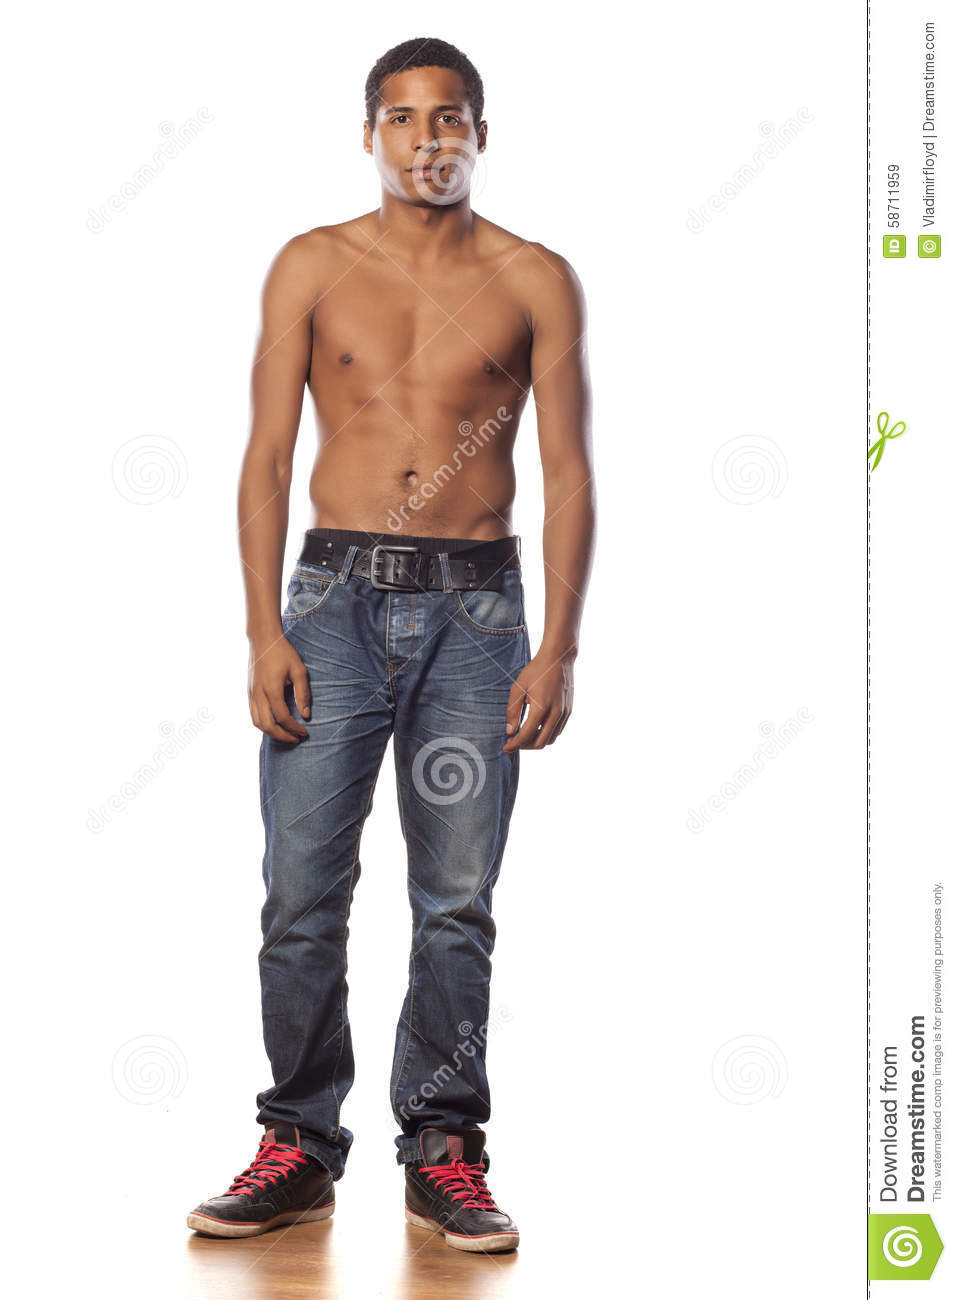 Half-Naked Man Stock Image Image Of Model, Cheerful - 58711959-9954